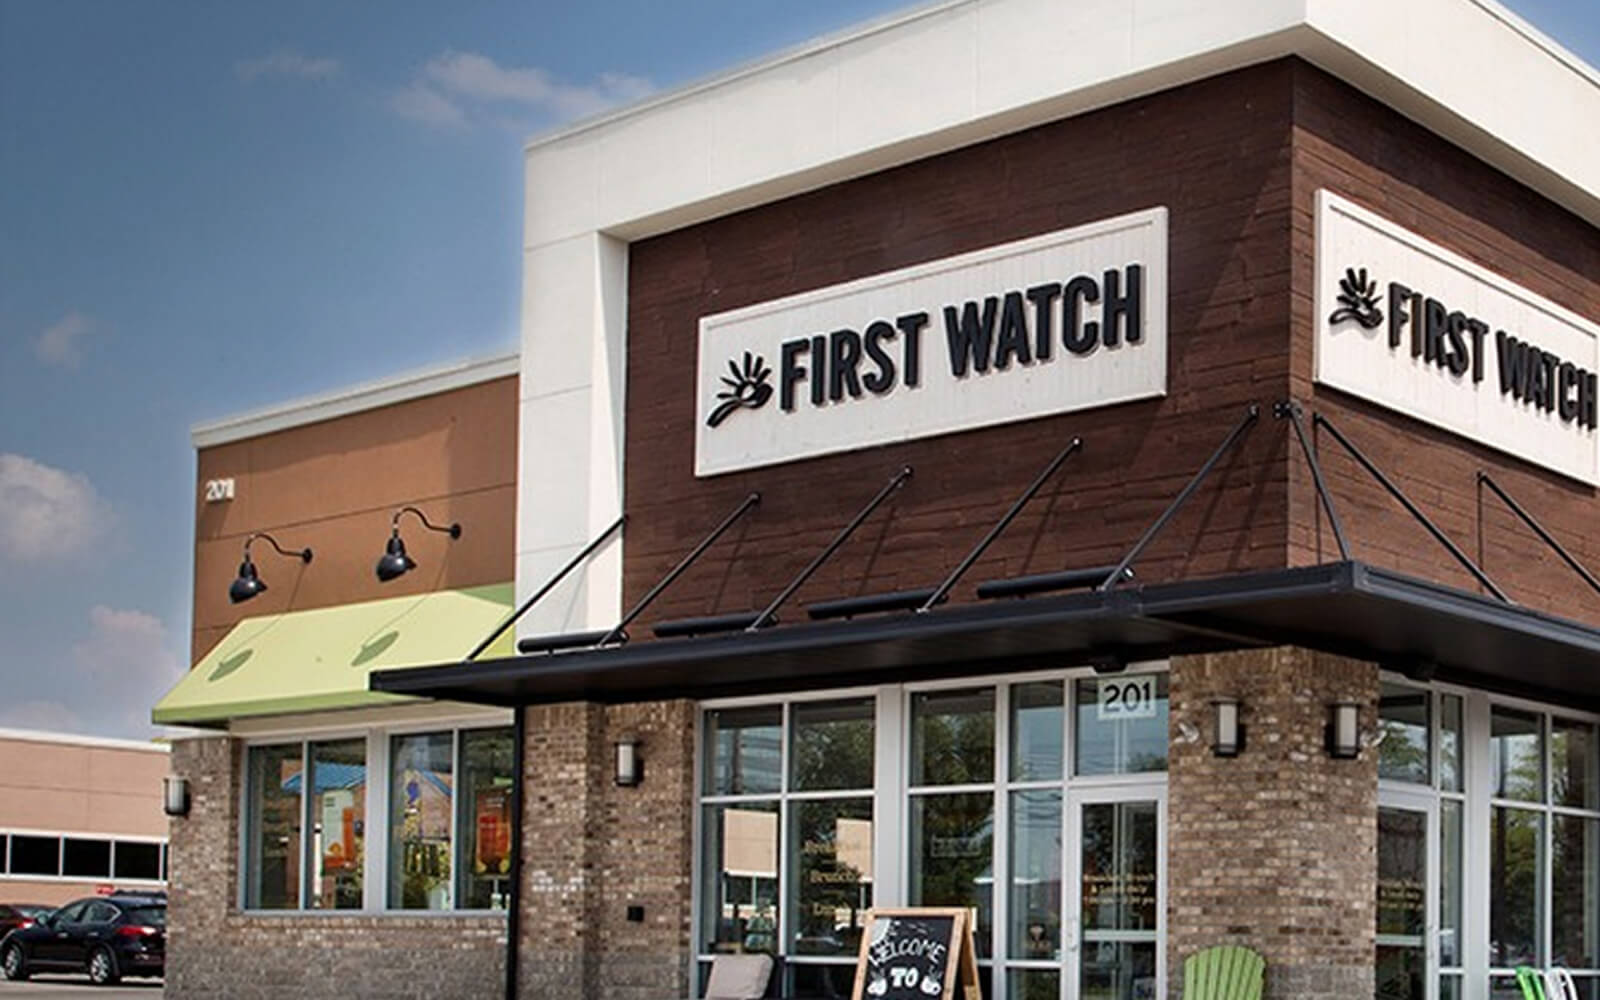 First Watch Restaurants augments growth strategy with leading location intelligence platform